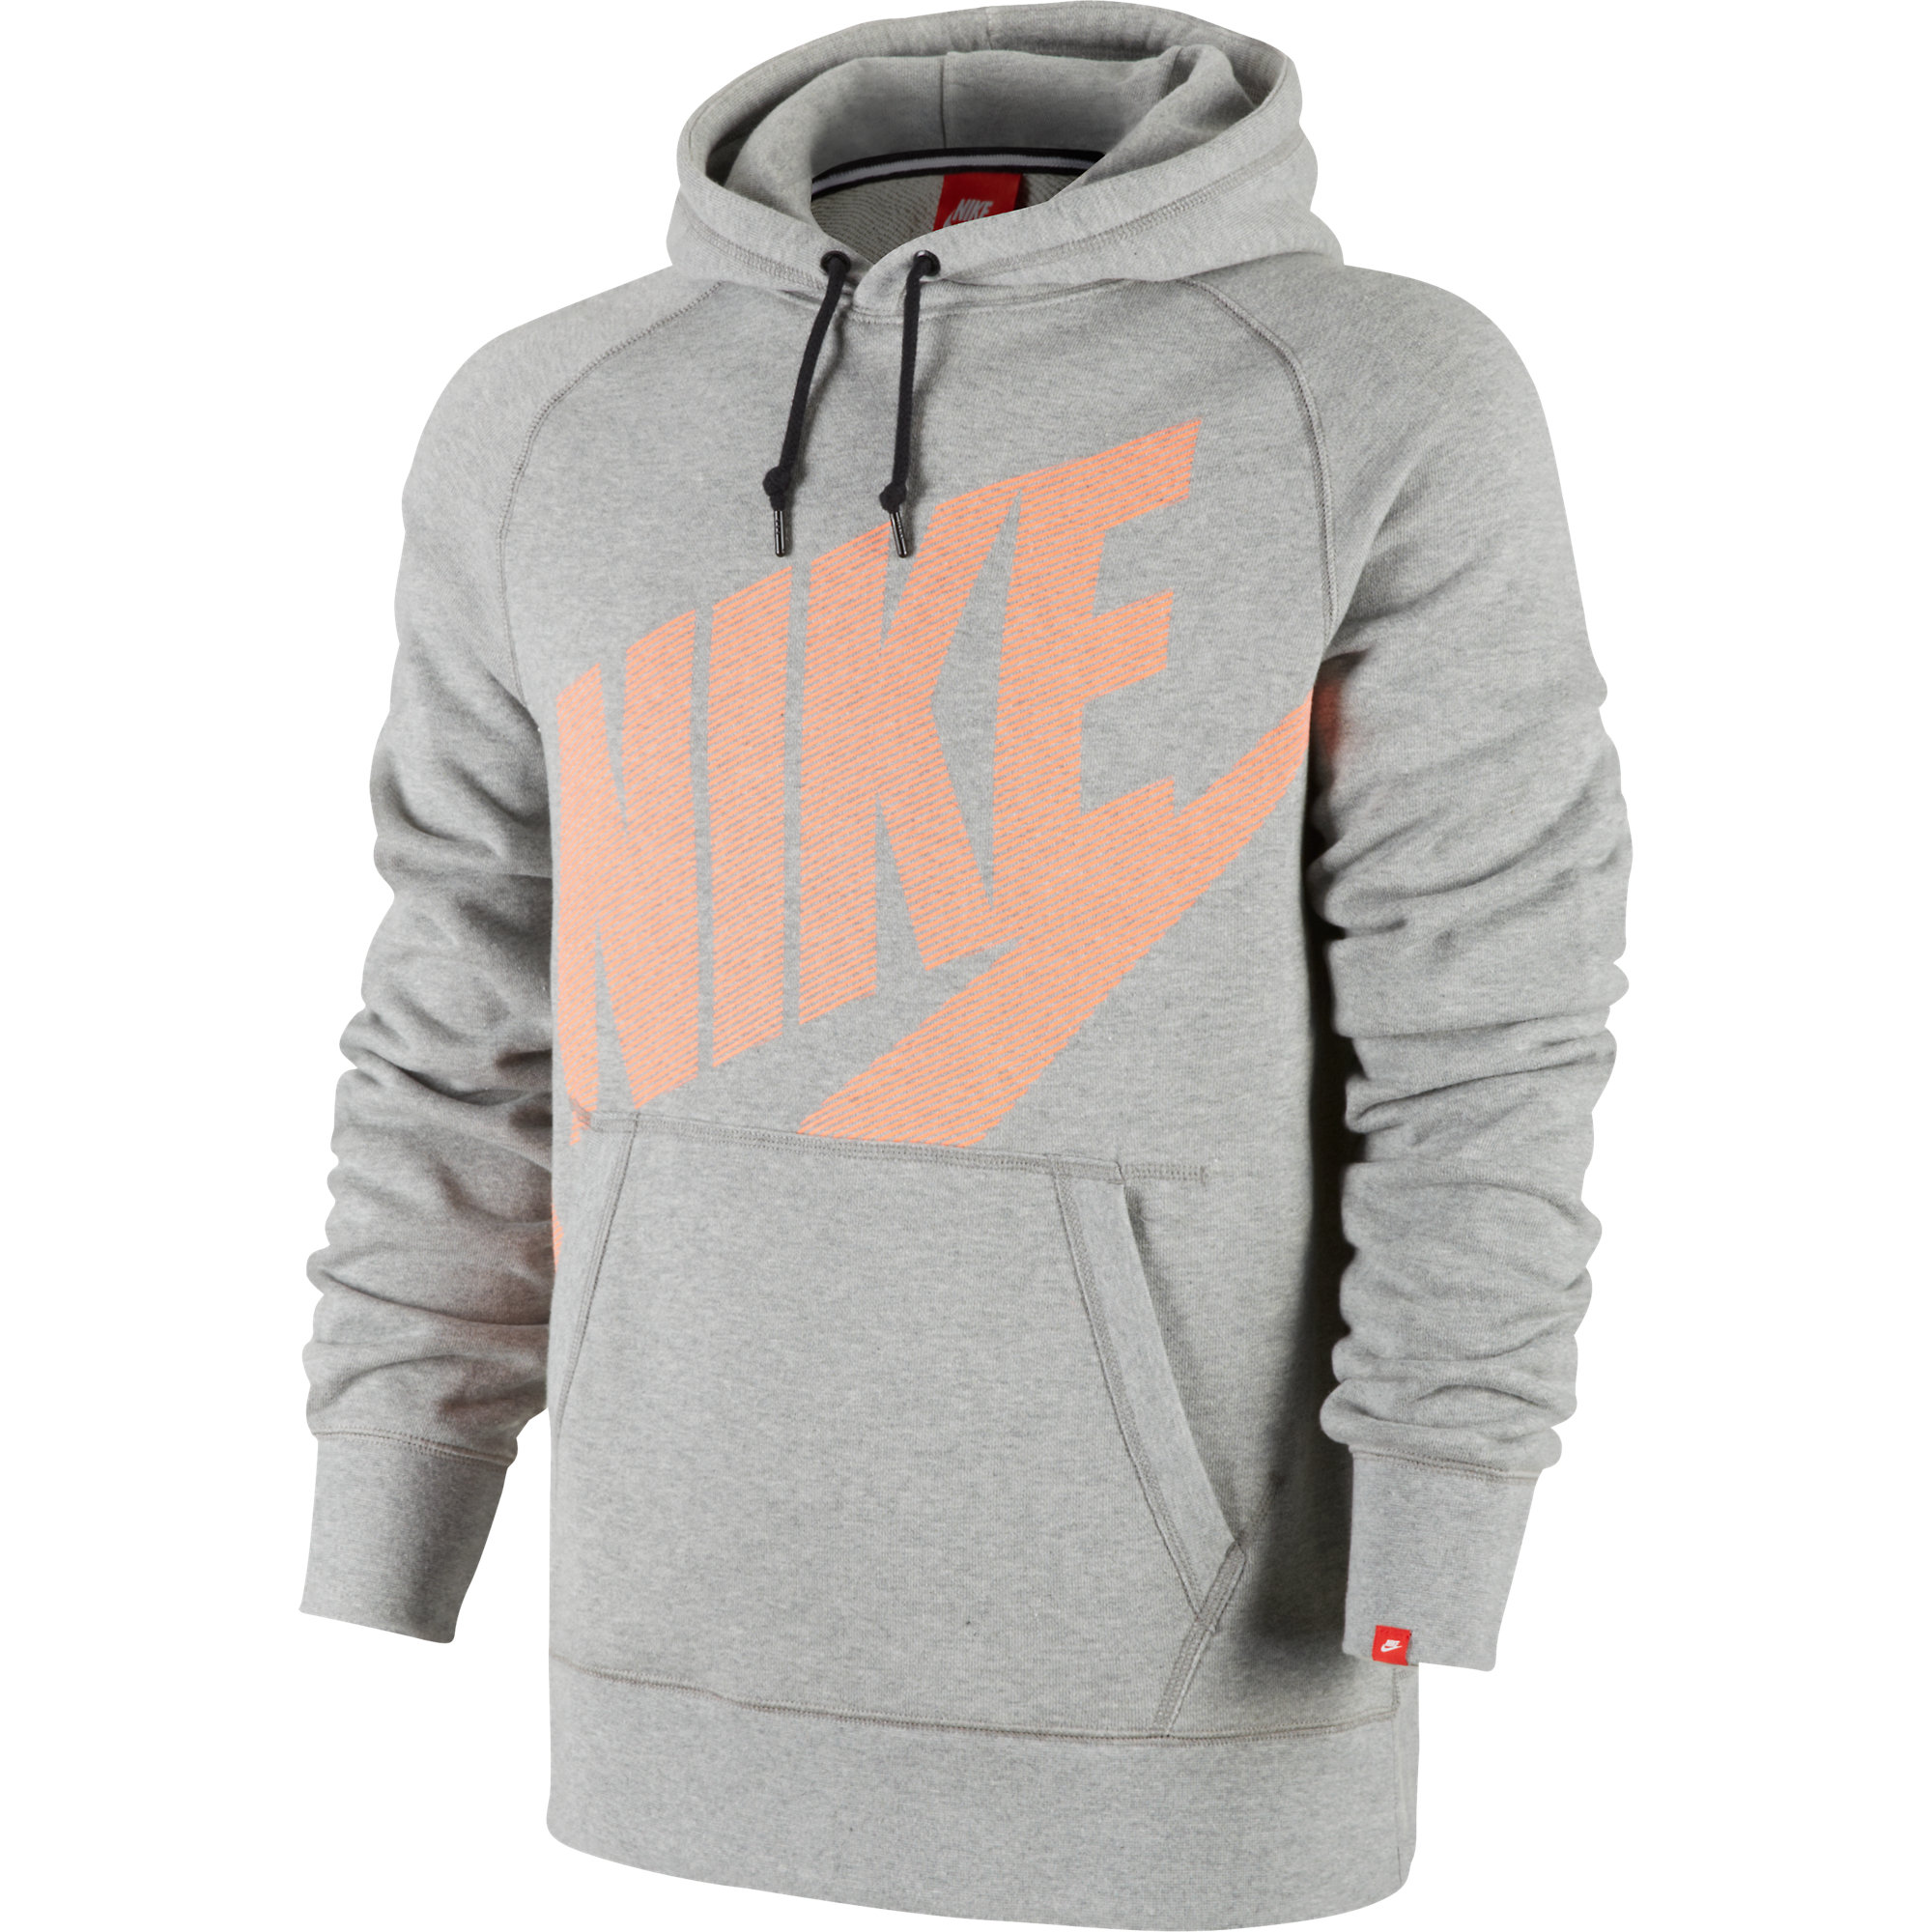 nike aw77 fleece hoodie logo 26 cardigan with buttons. Black Bedroom Furniture Sets. Home Design Ideas